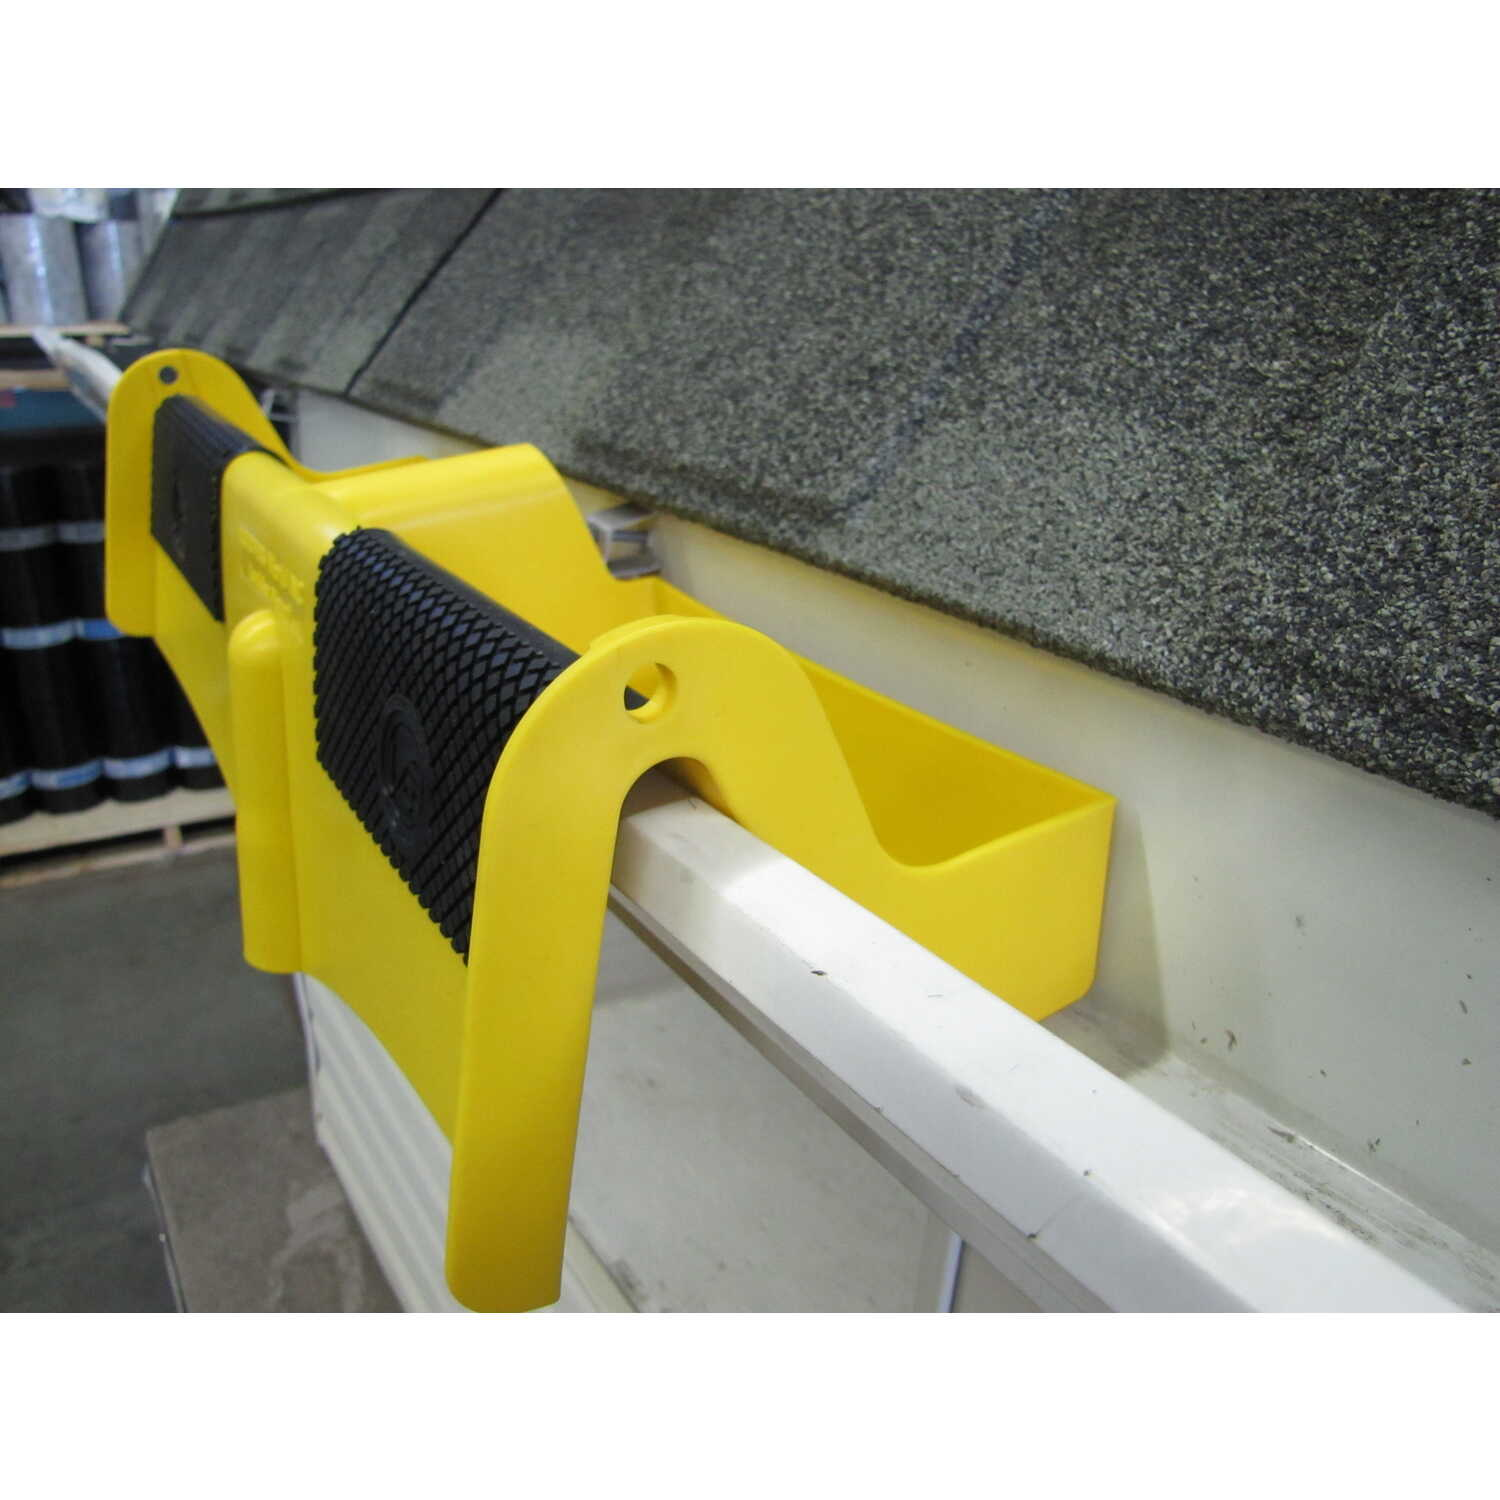 Roofers World  Ladder Mount  Plastic Polymer  Yellow  Ladder Stabilizer  1 pk